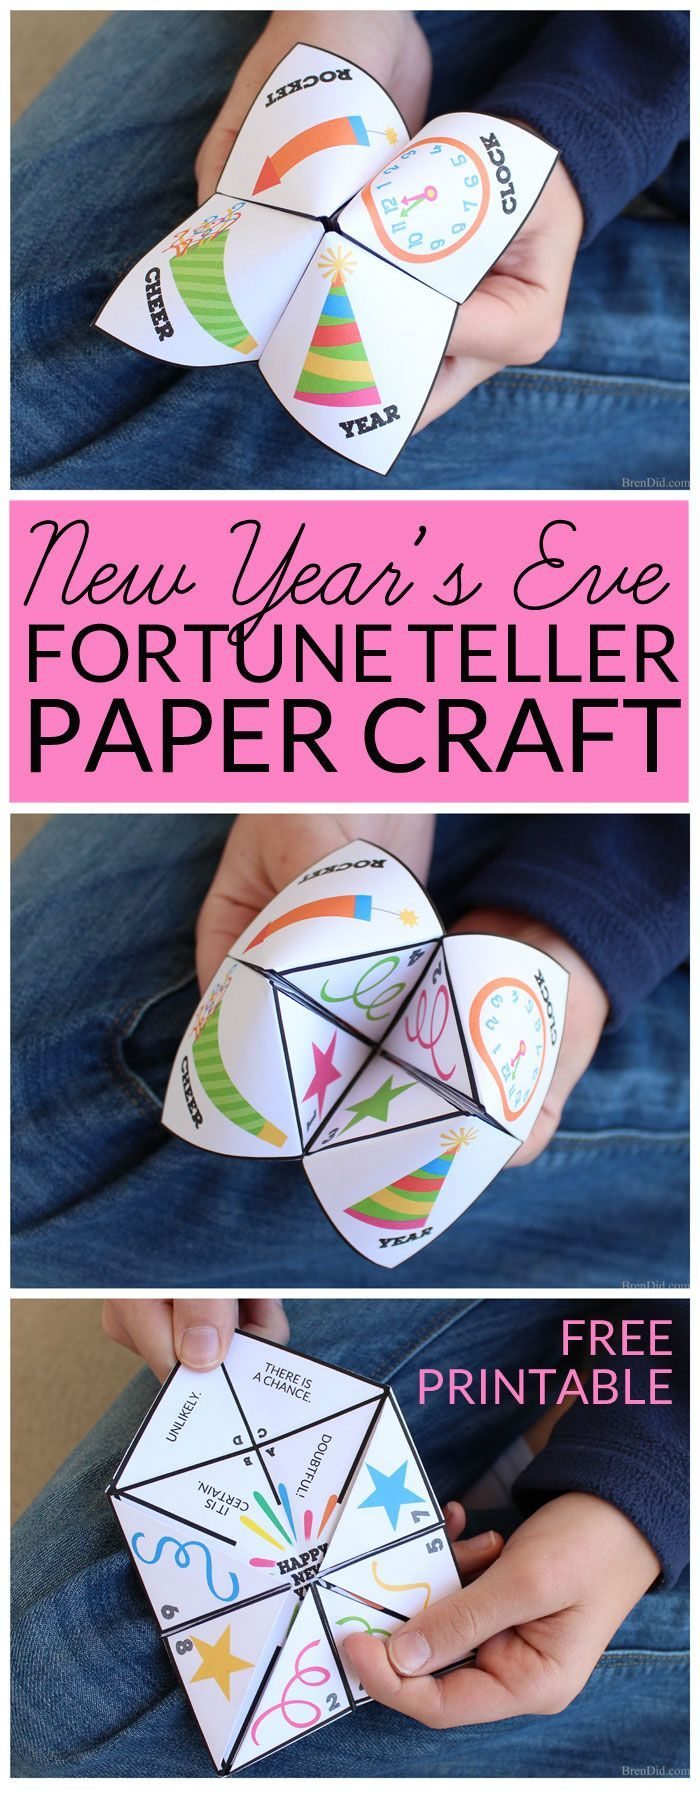 New Year's Eve Fortune Teller Paper Craft New year's eve